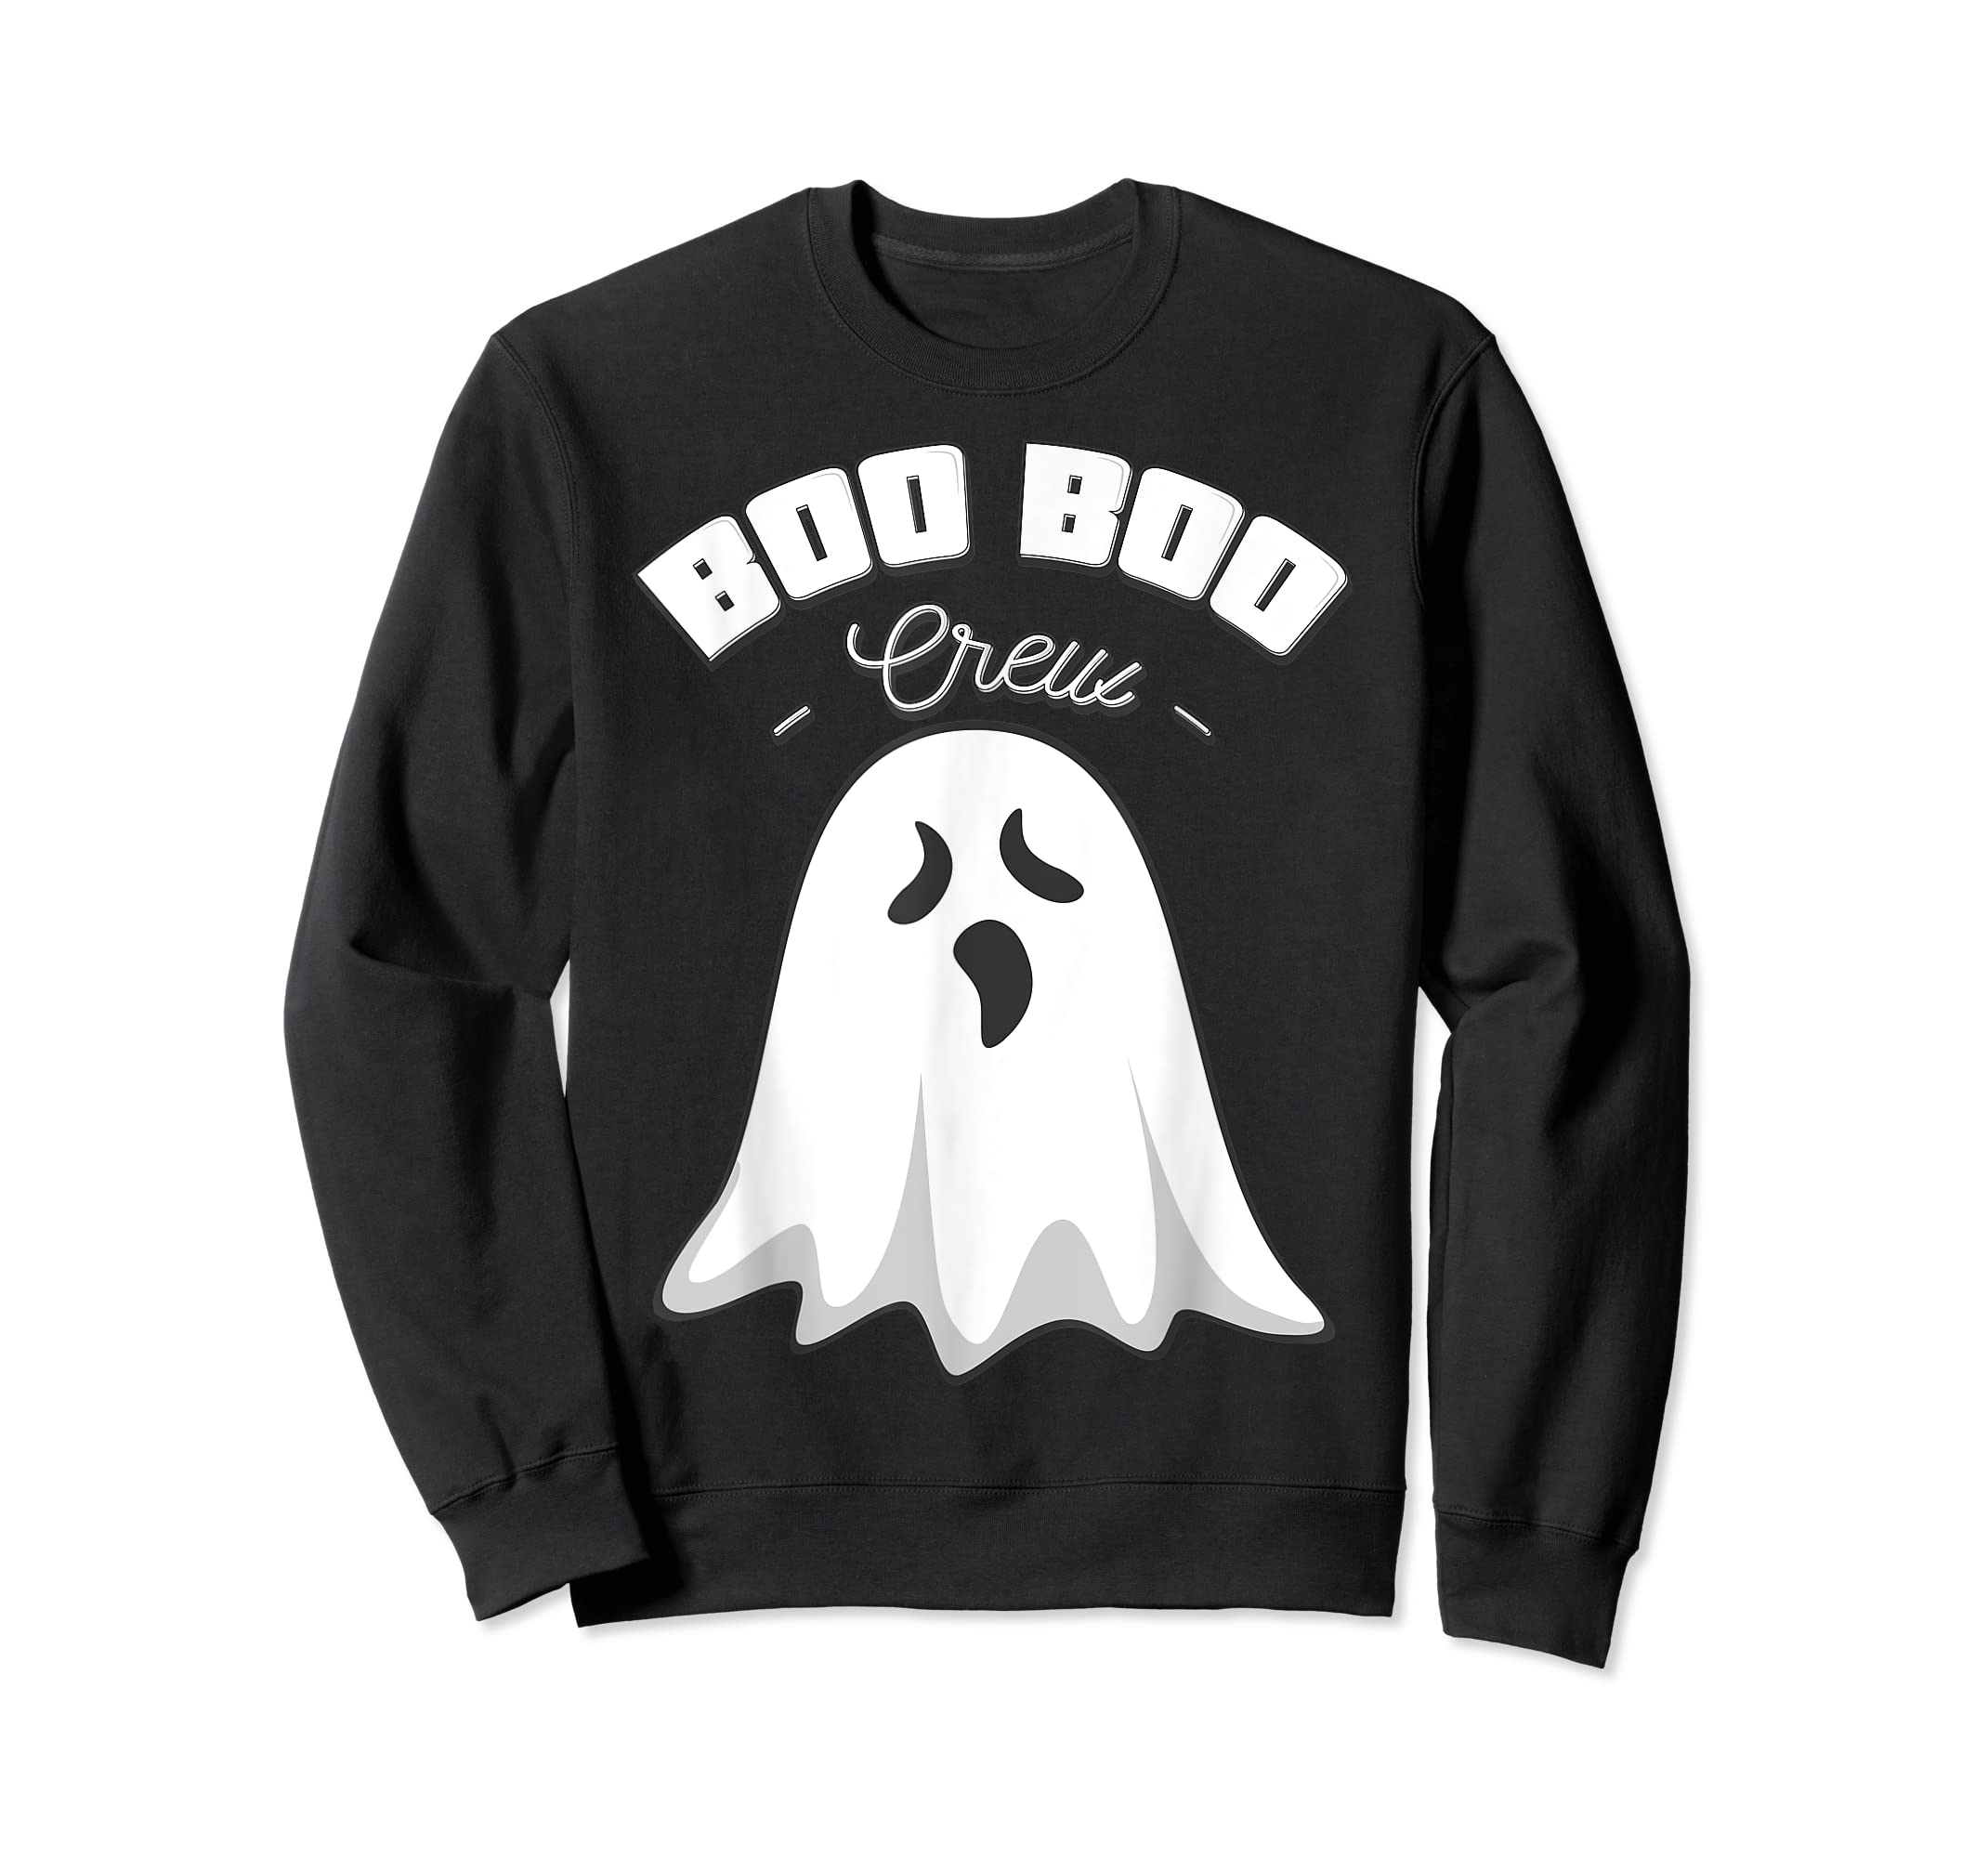 Boo Boo Crew Ghost Funny Halloween Black and Orange Night  T-Shirt-Sweatshirt-Black